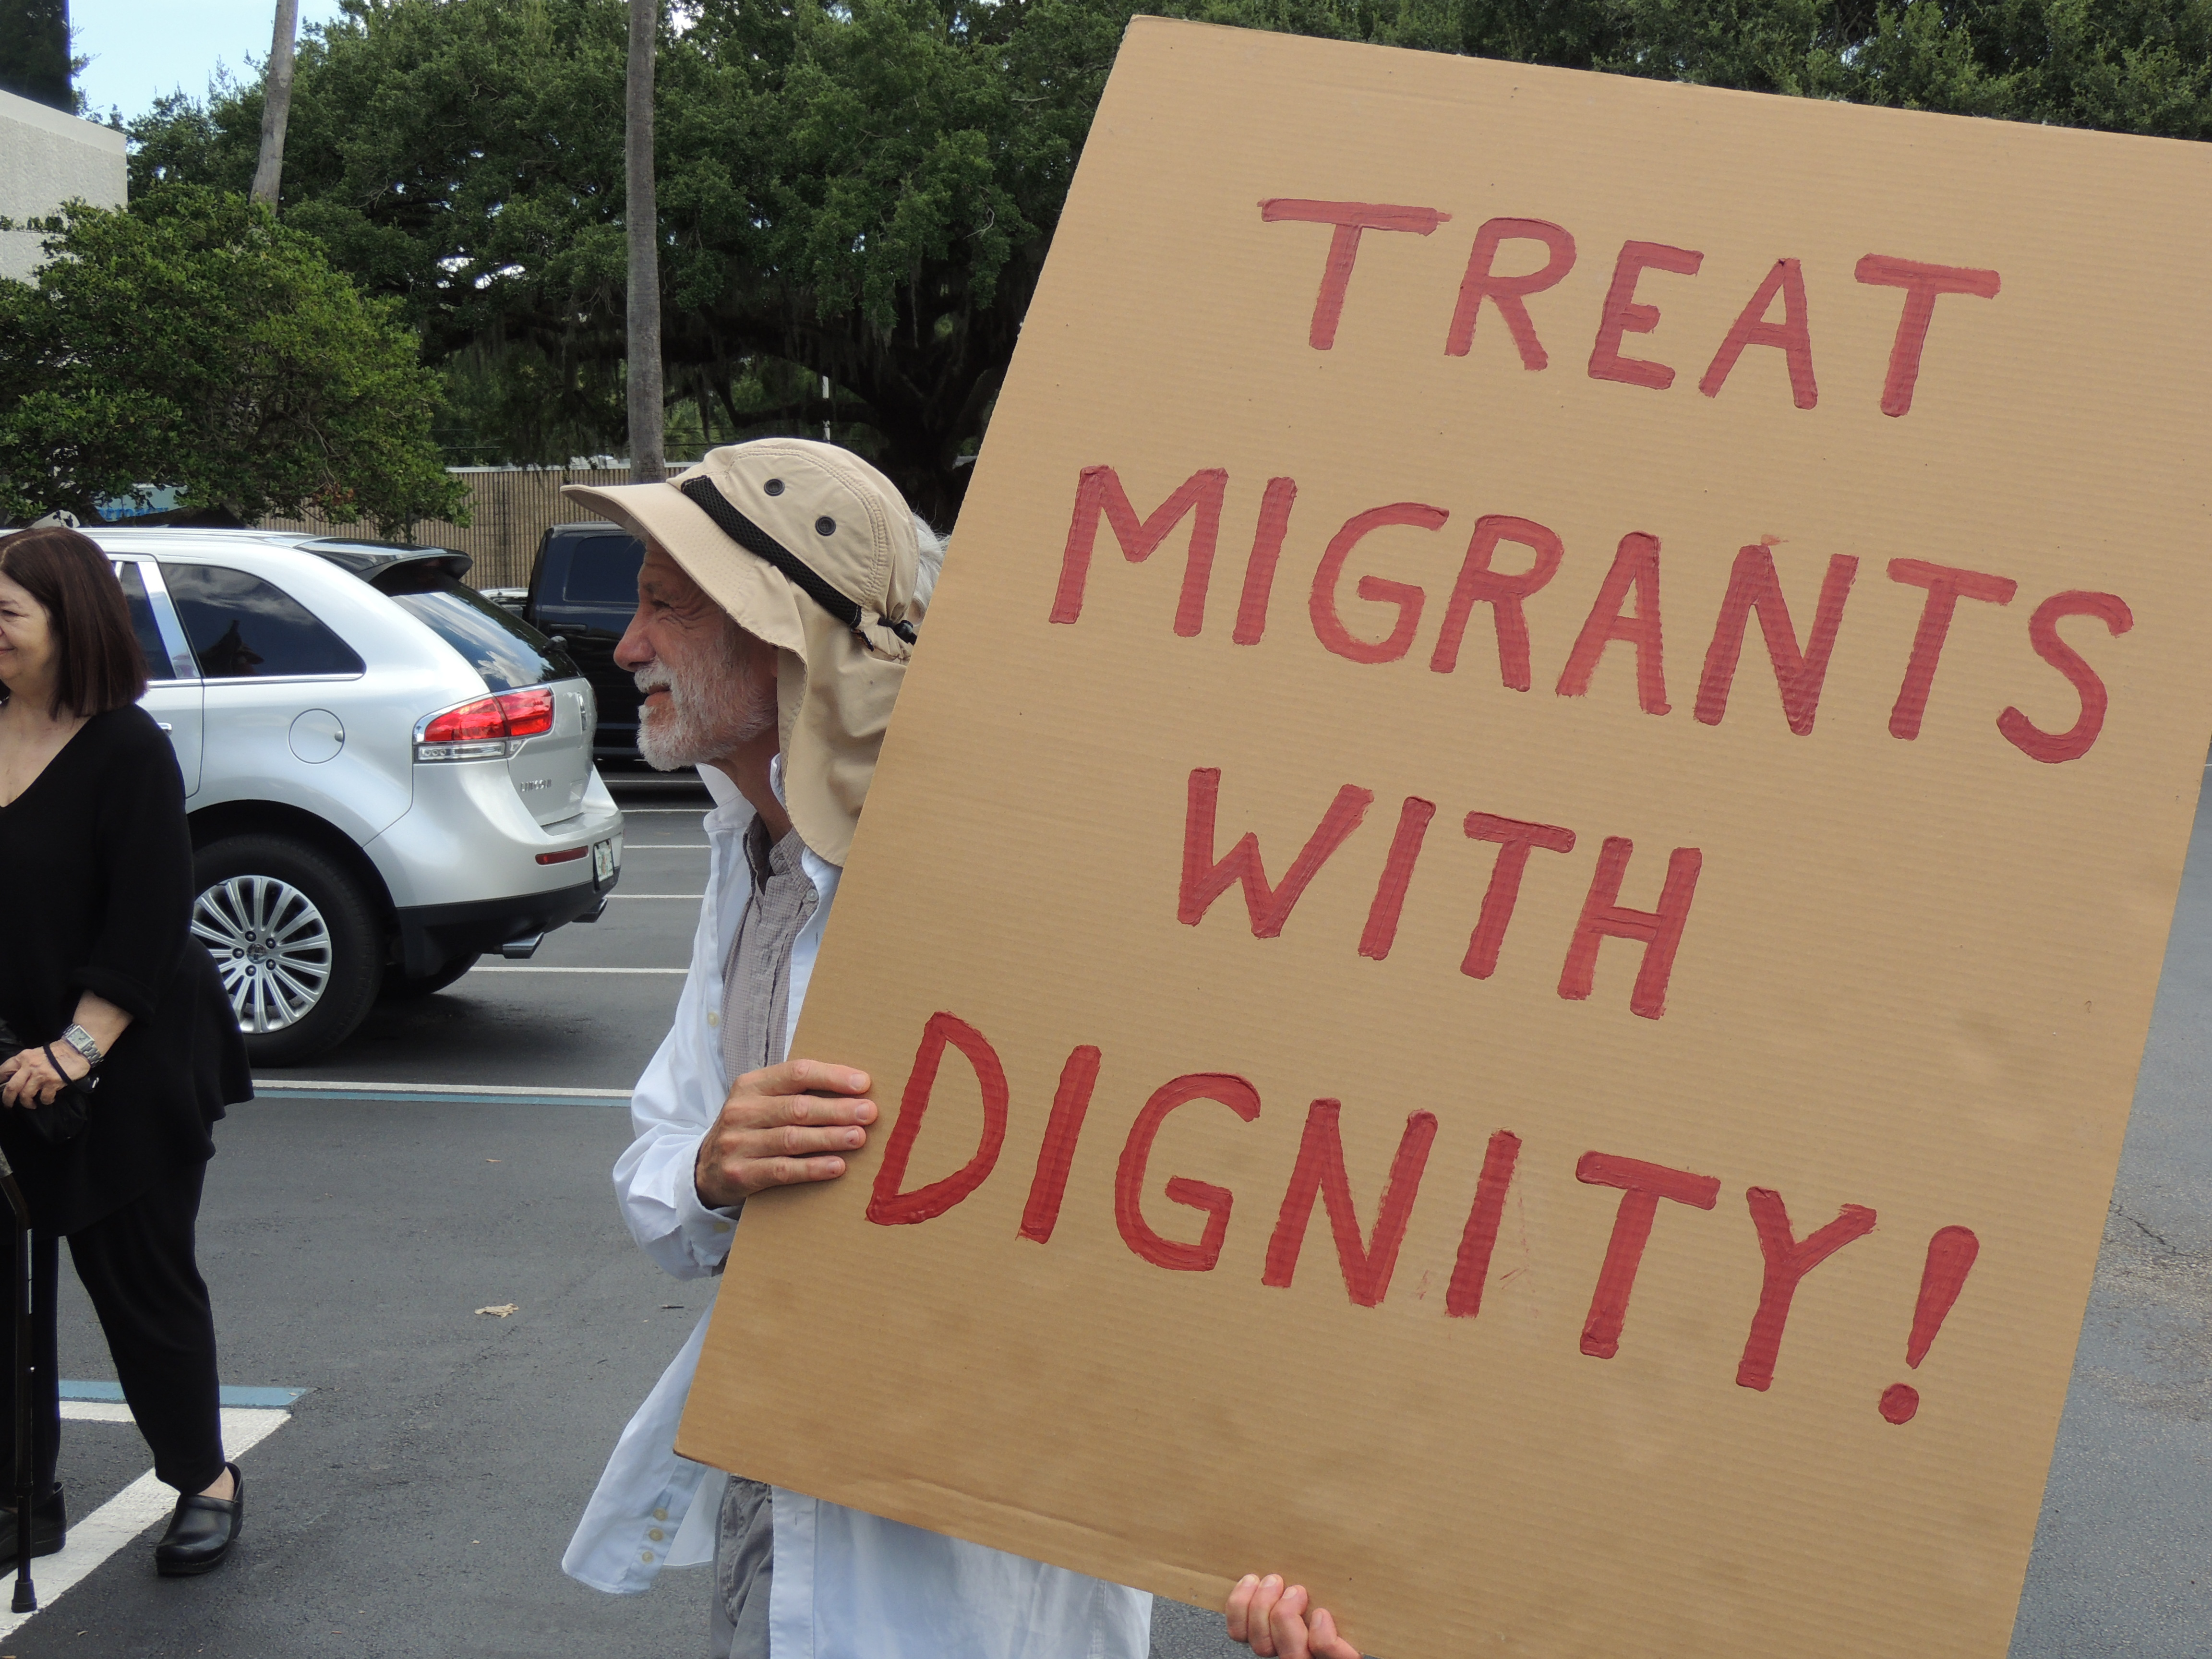 Treat migrants with dignity sign; immigration, migrant detention centers